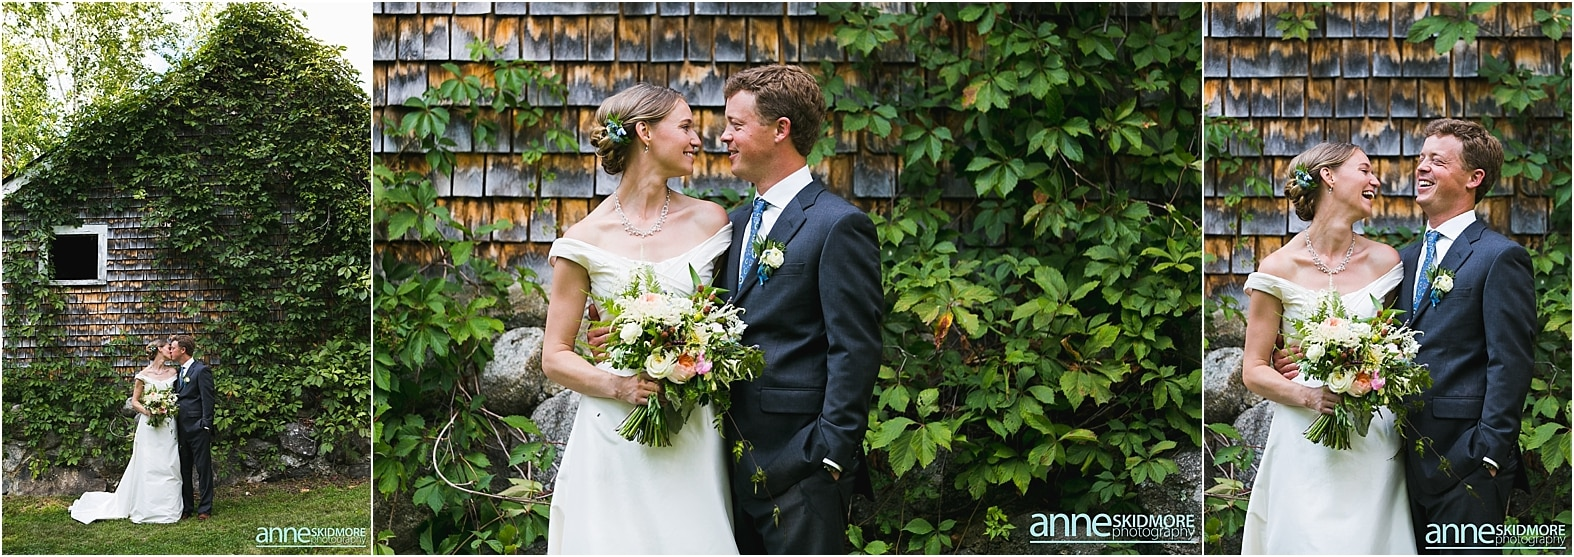 new_hampshire_wedding_photography_0045